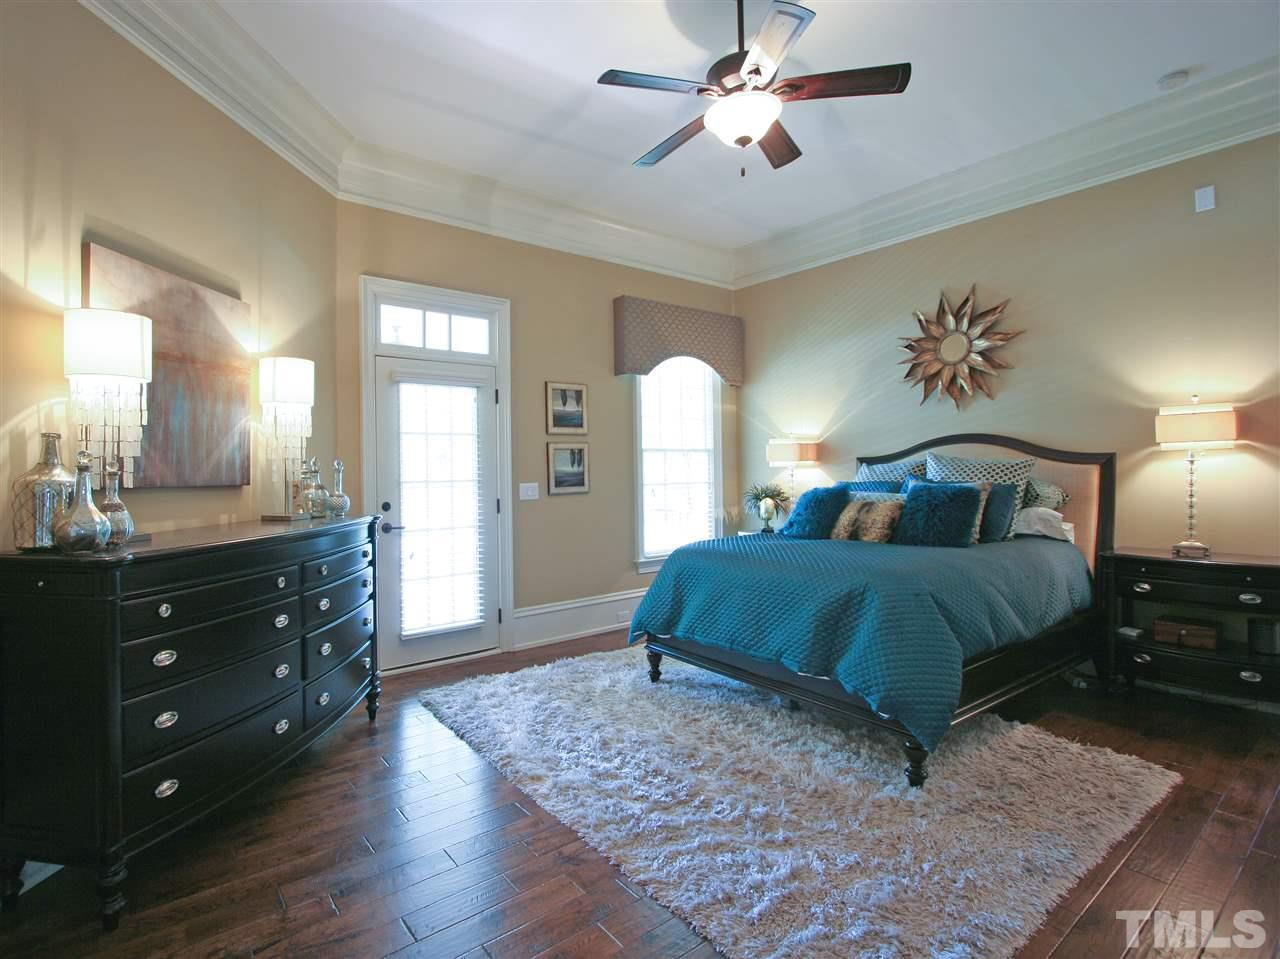 Luxurious master suite is on the first floor and features this spacious bedroom with hardwood floor and a spectacular en suite bath. The master bedroom has direct access to the side porch.